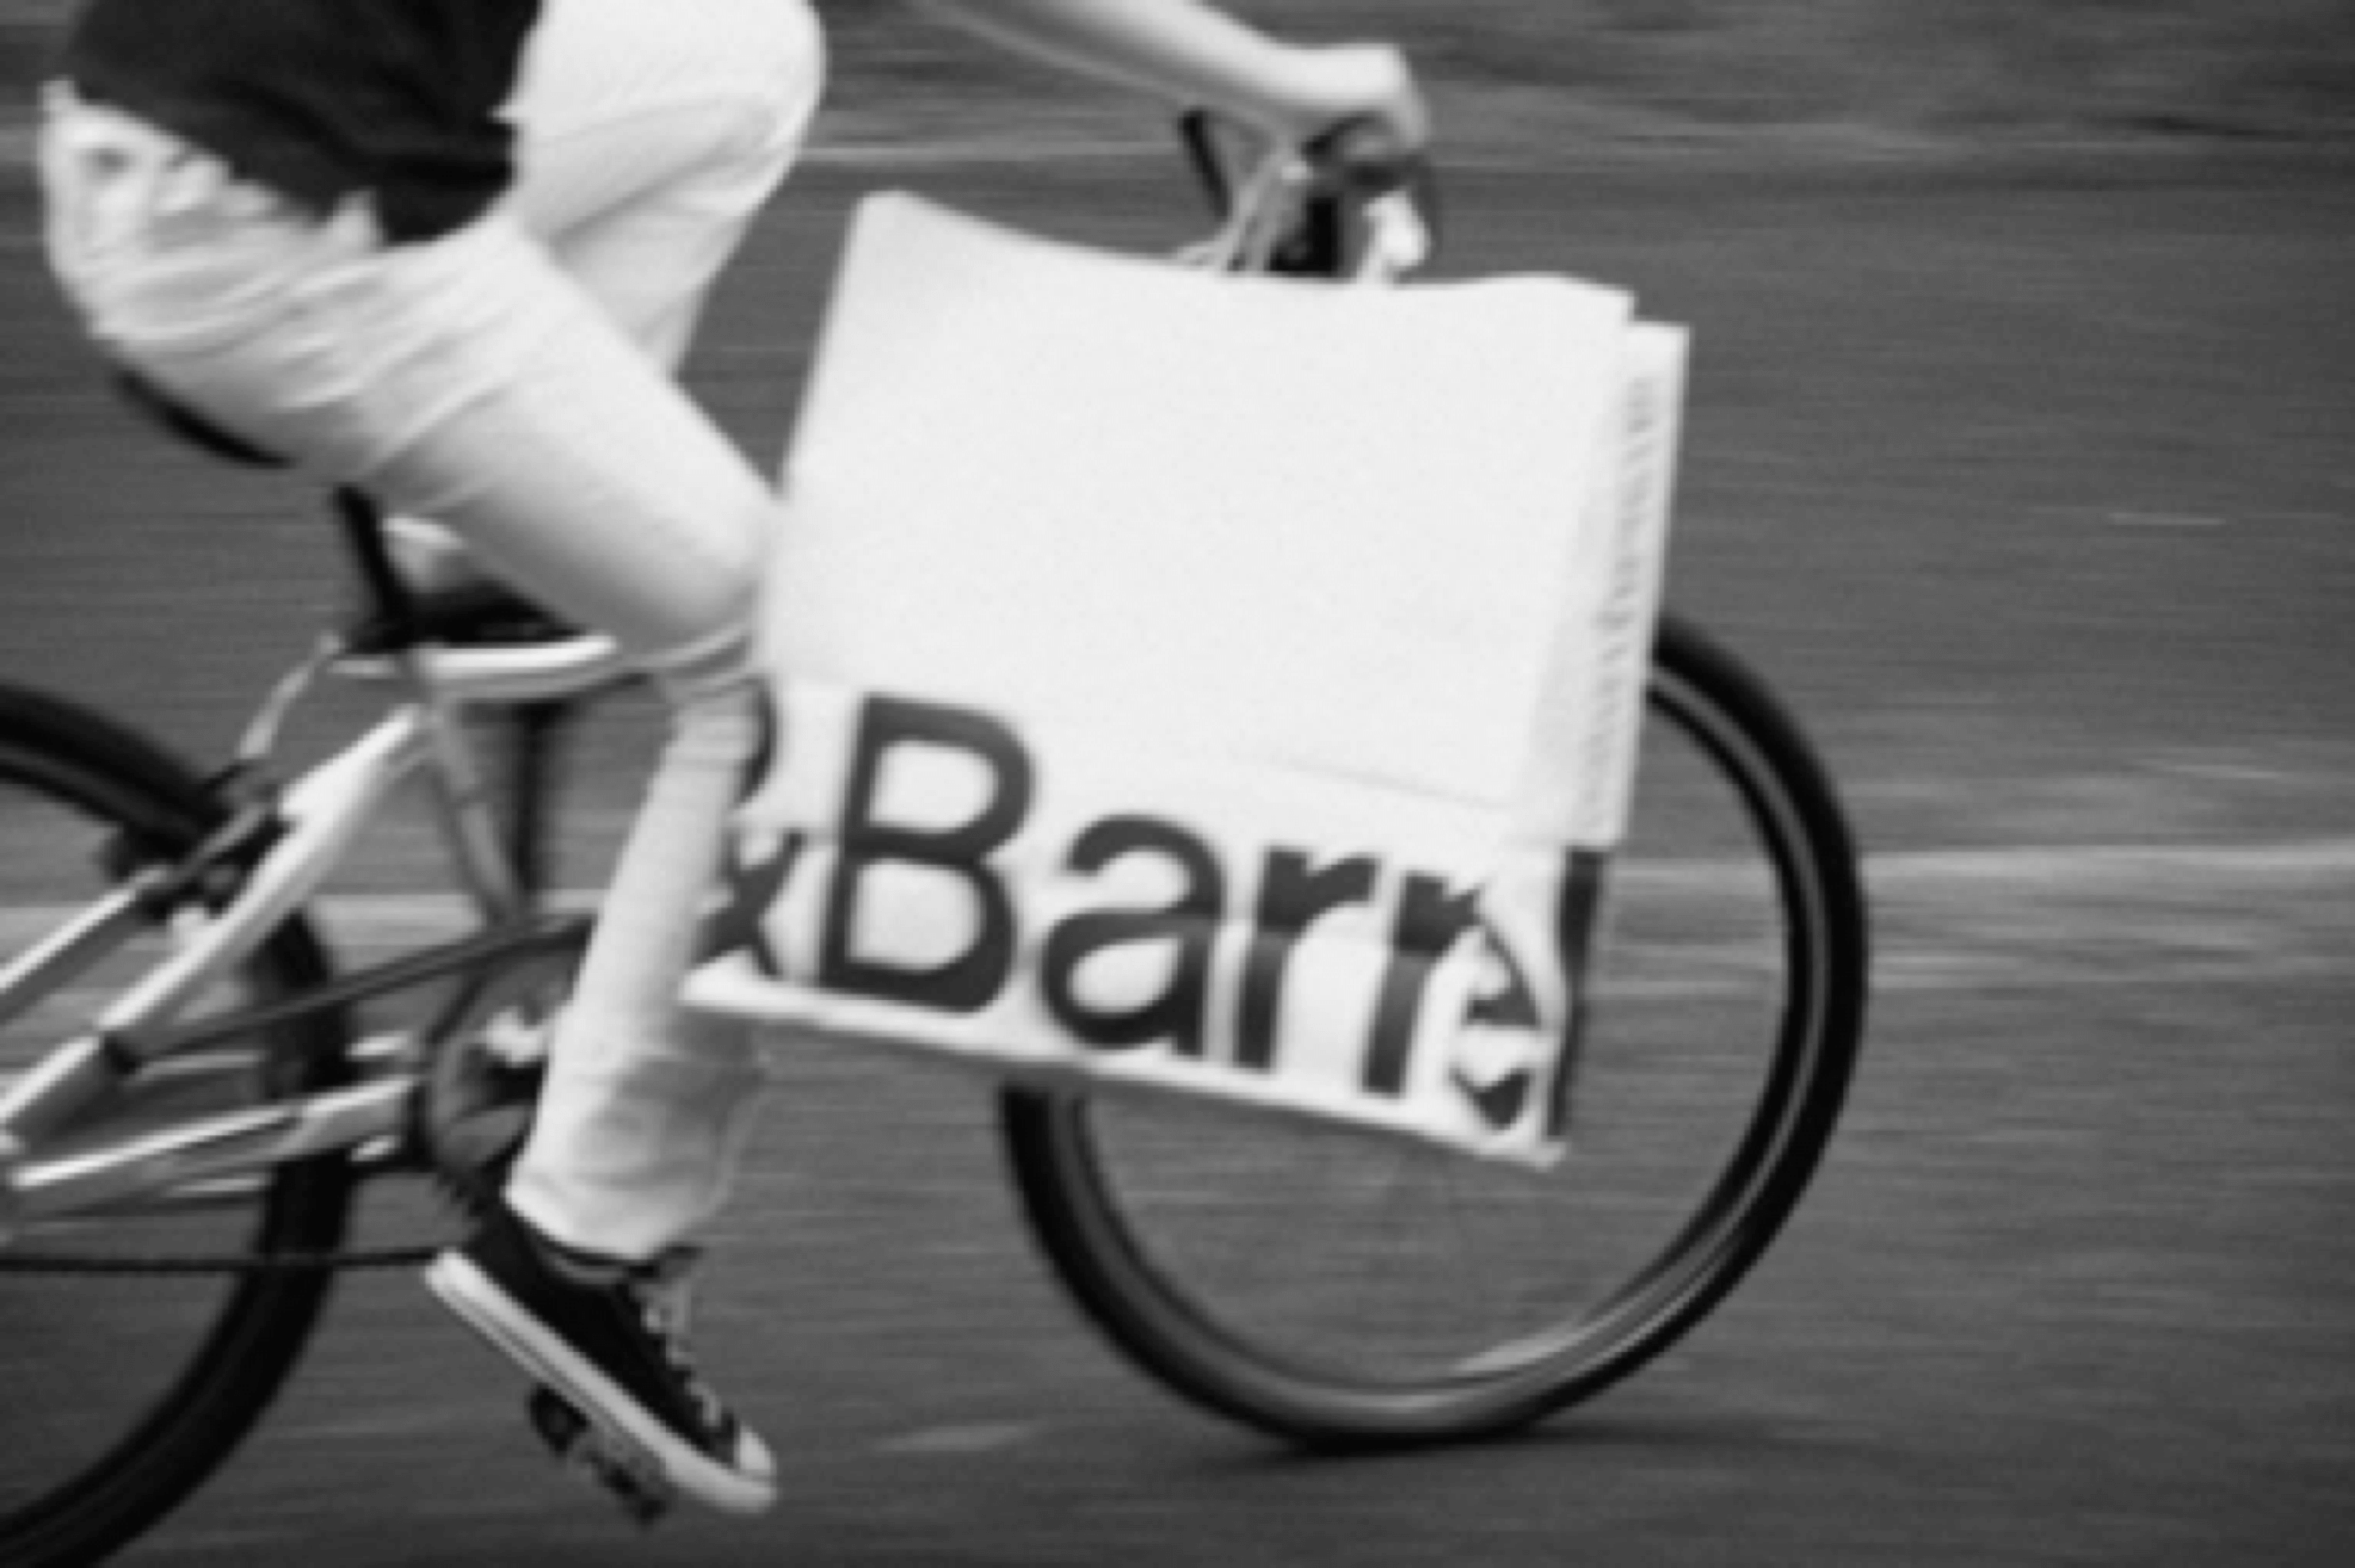 Crate + Barrel advertisement of woman on a bike styled by Sarah Parlow Fashion Stylist